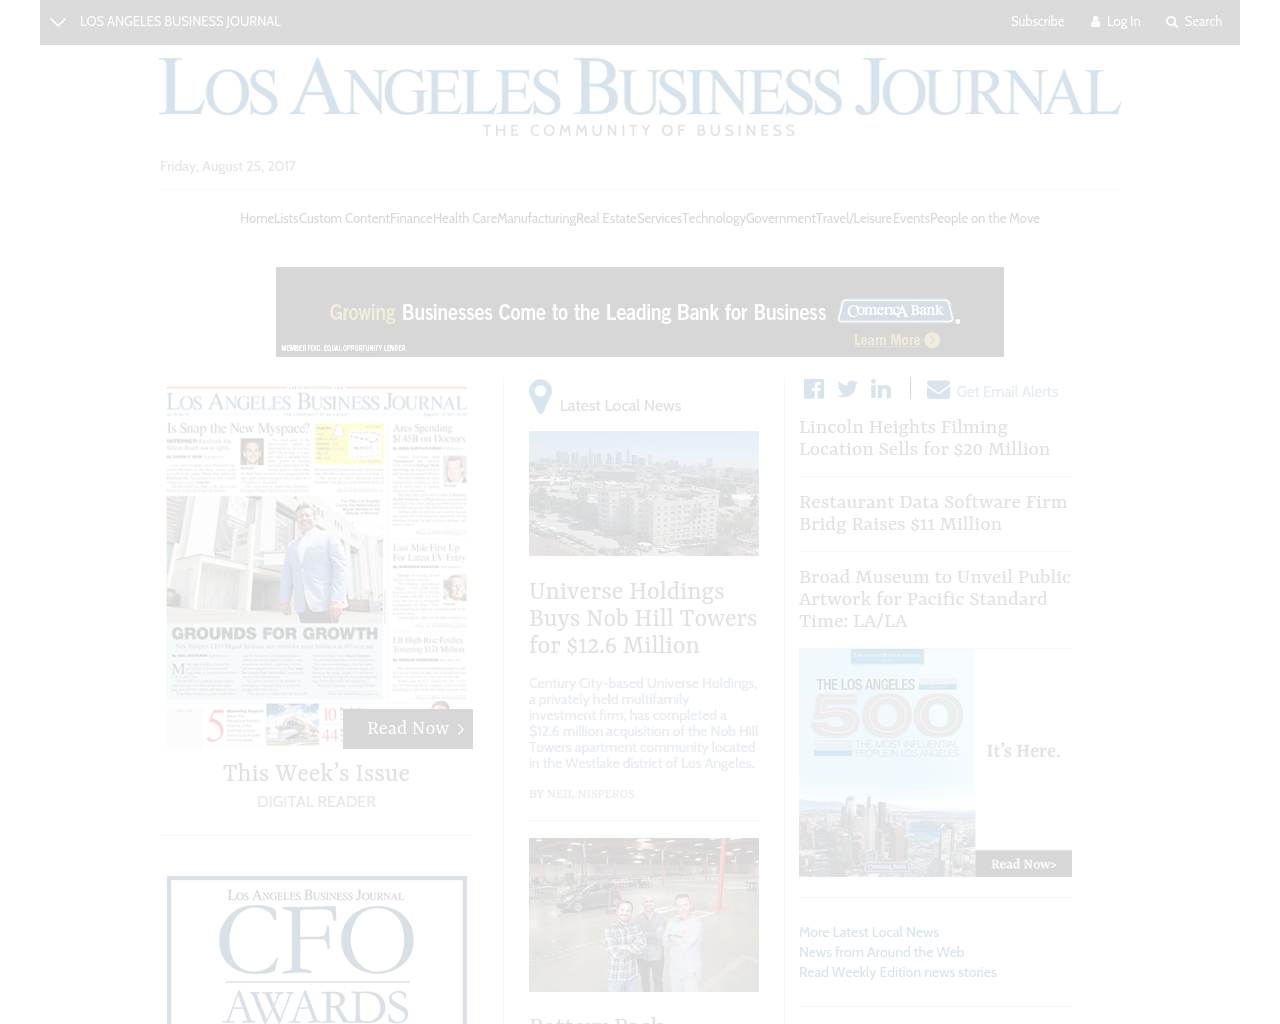 Los-Angeles-Business-Journal-Advertising-Reviews-Pricing